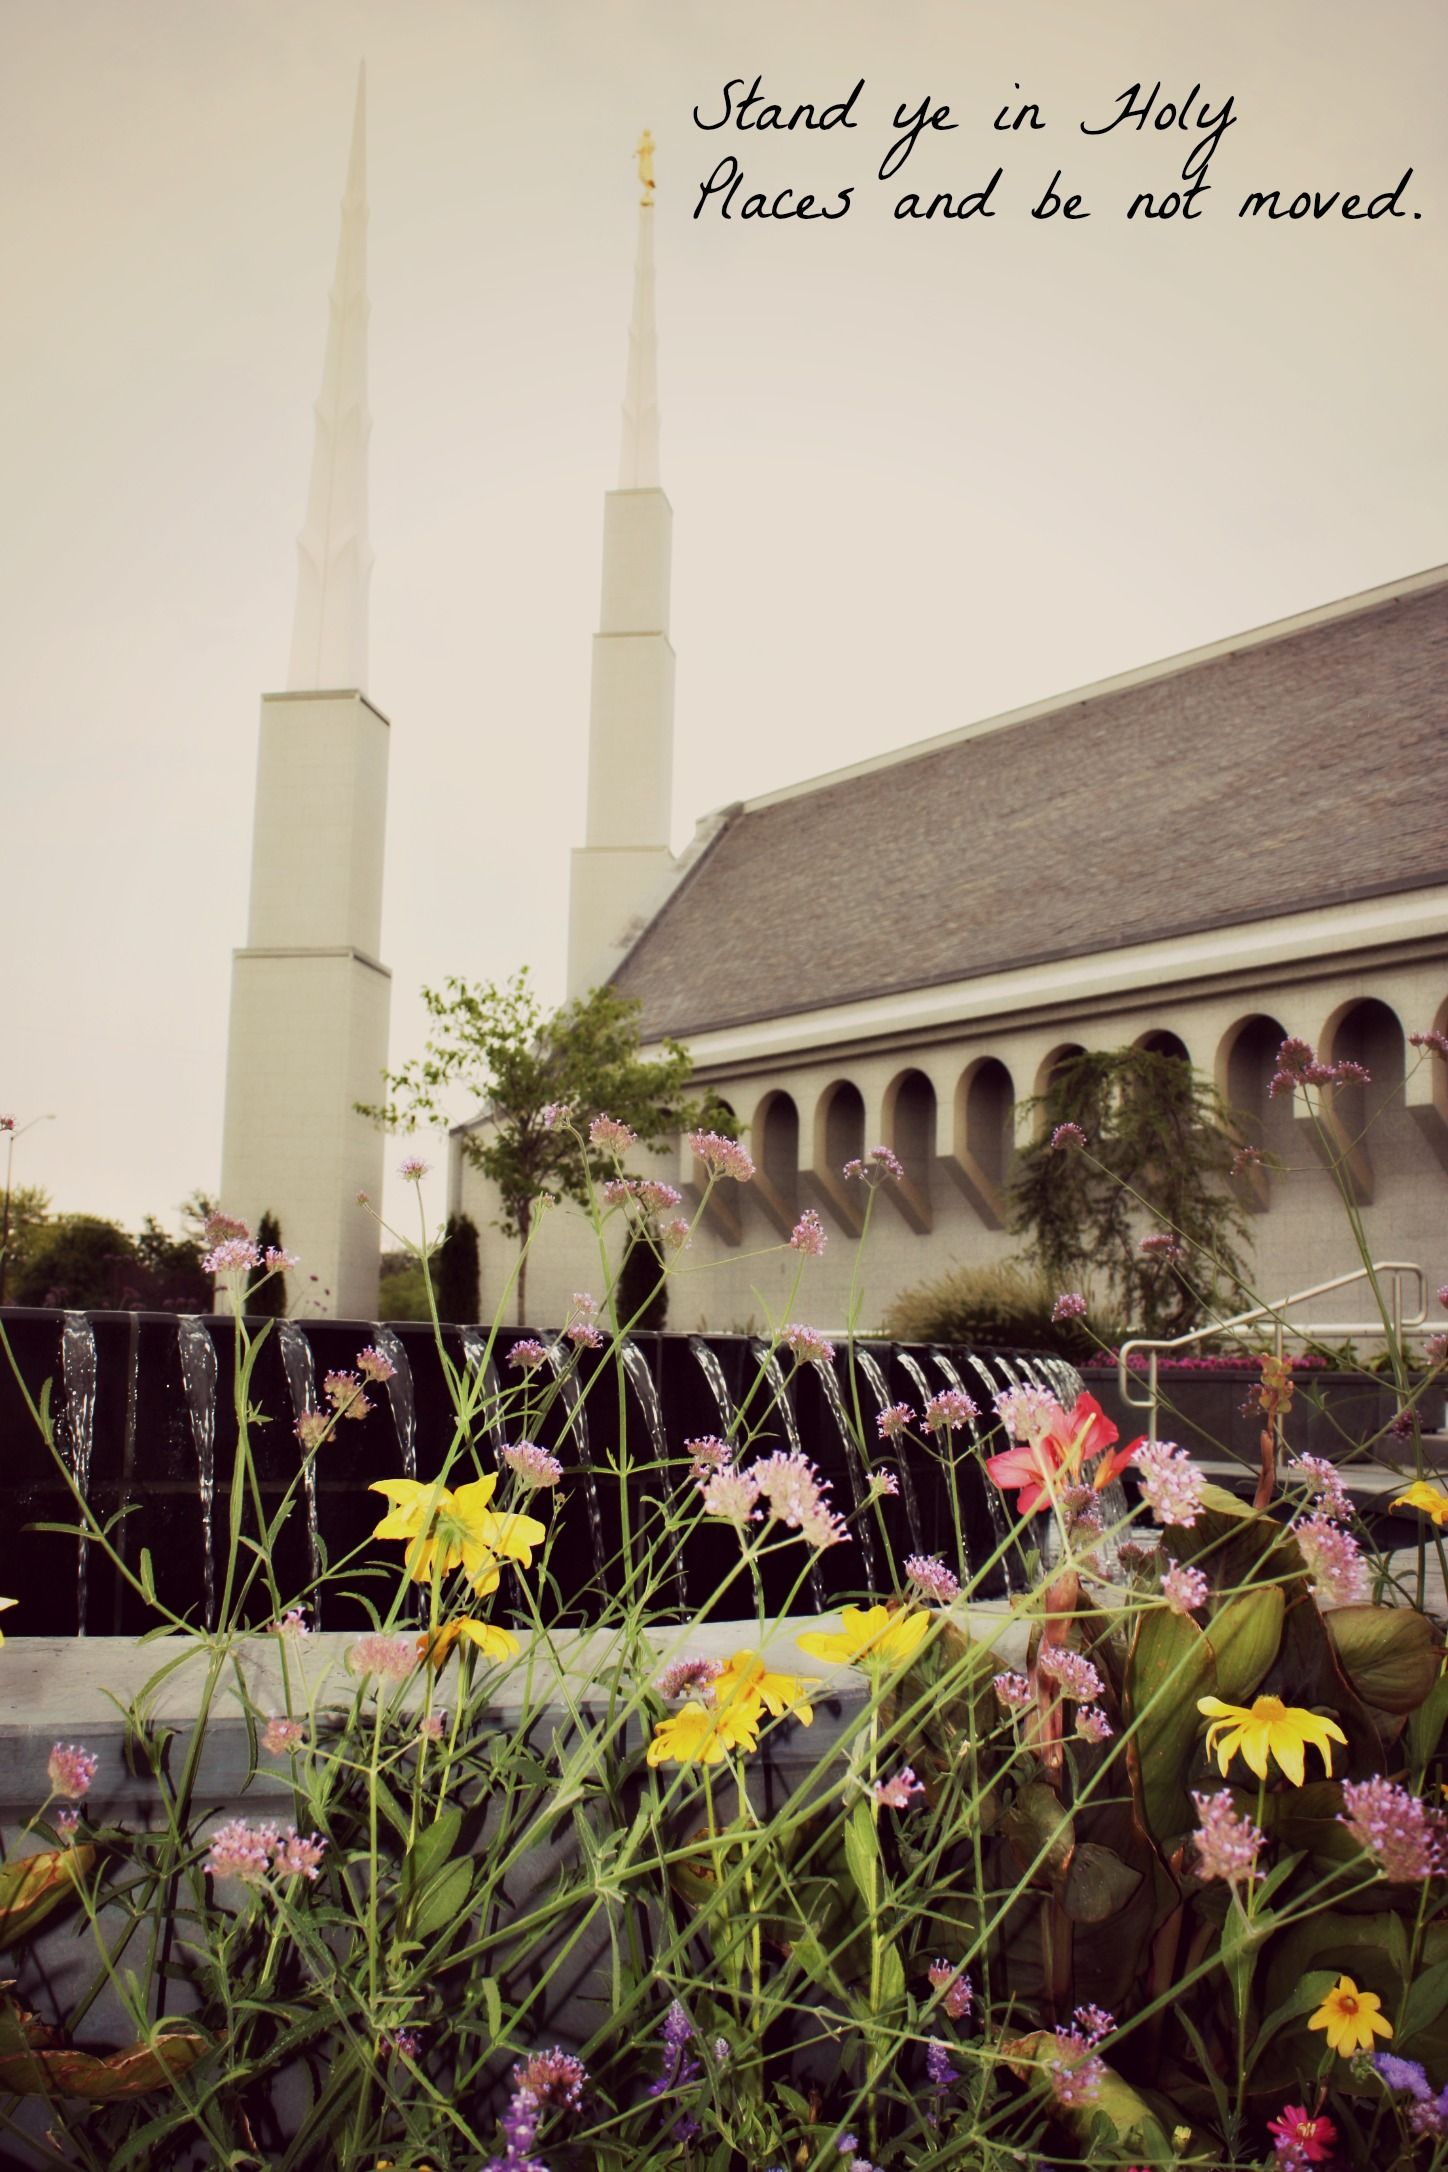 I took this photo and edited this photo of the Boise Idaho Temple